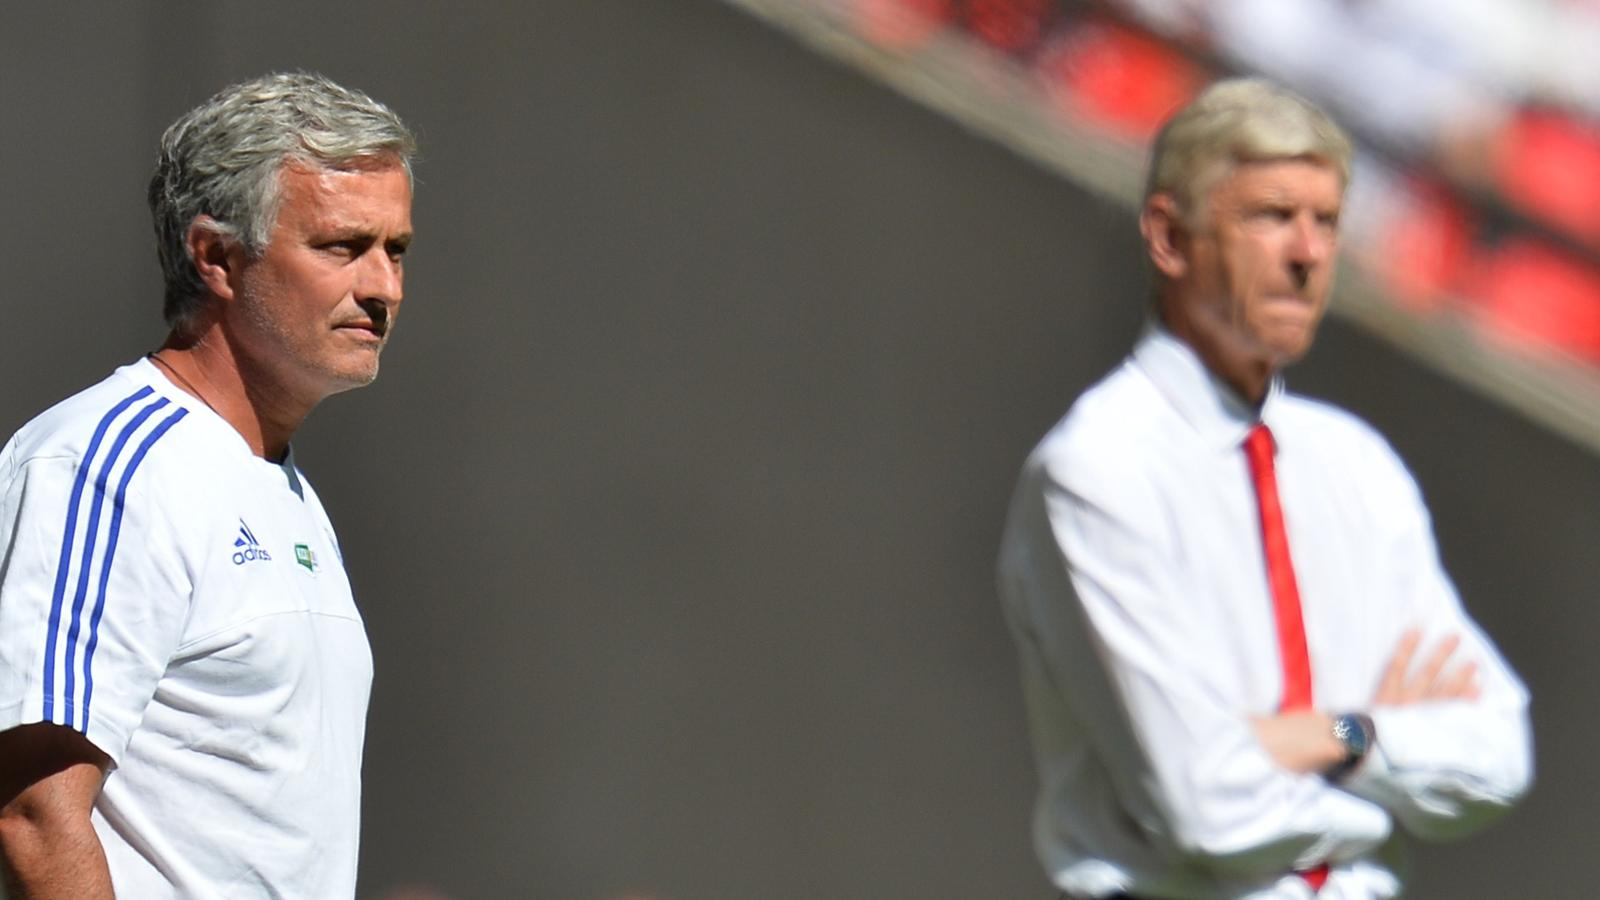 Chelsea's Portuguese manager Jose Mourinho (L) and Arsenal's French manager Arsene Wenger (R) watch from the side during the FA Community Shield football match between Arsenal and Chelsea at Wembley Stadium in north London on August 2, 2015